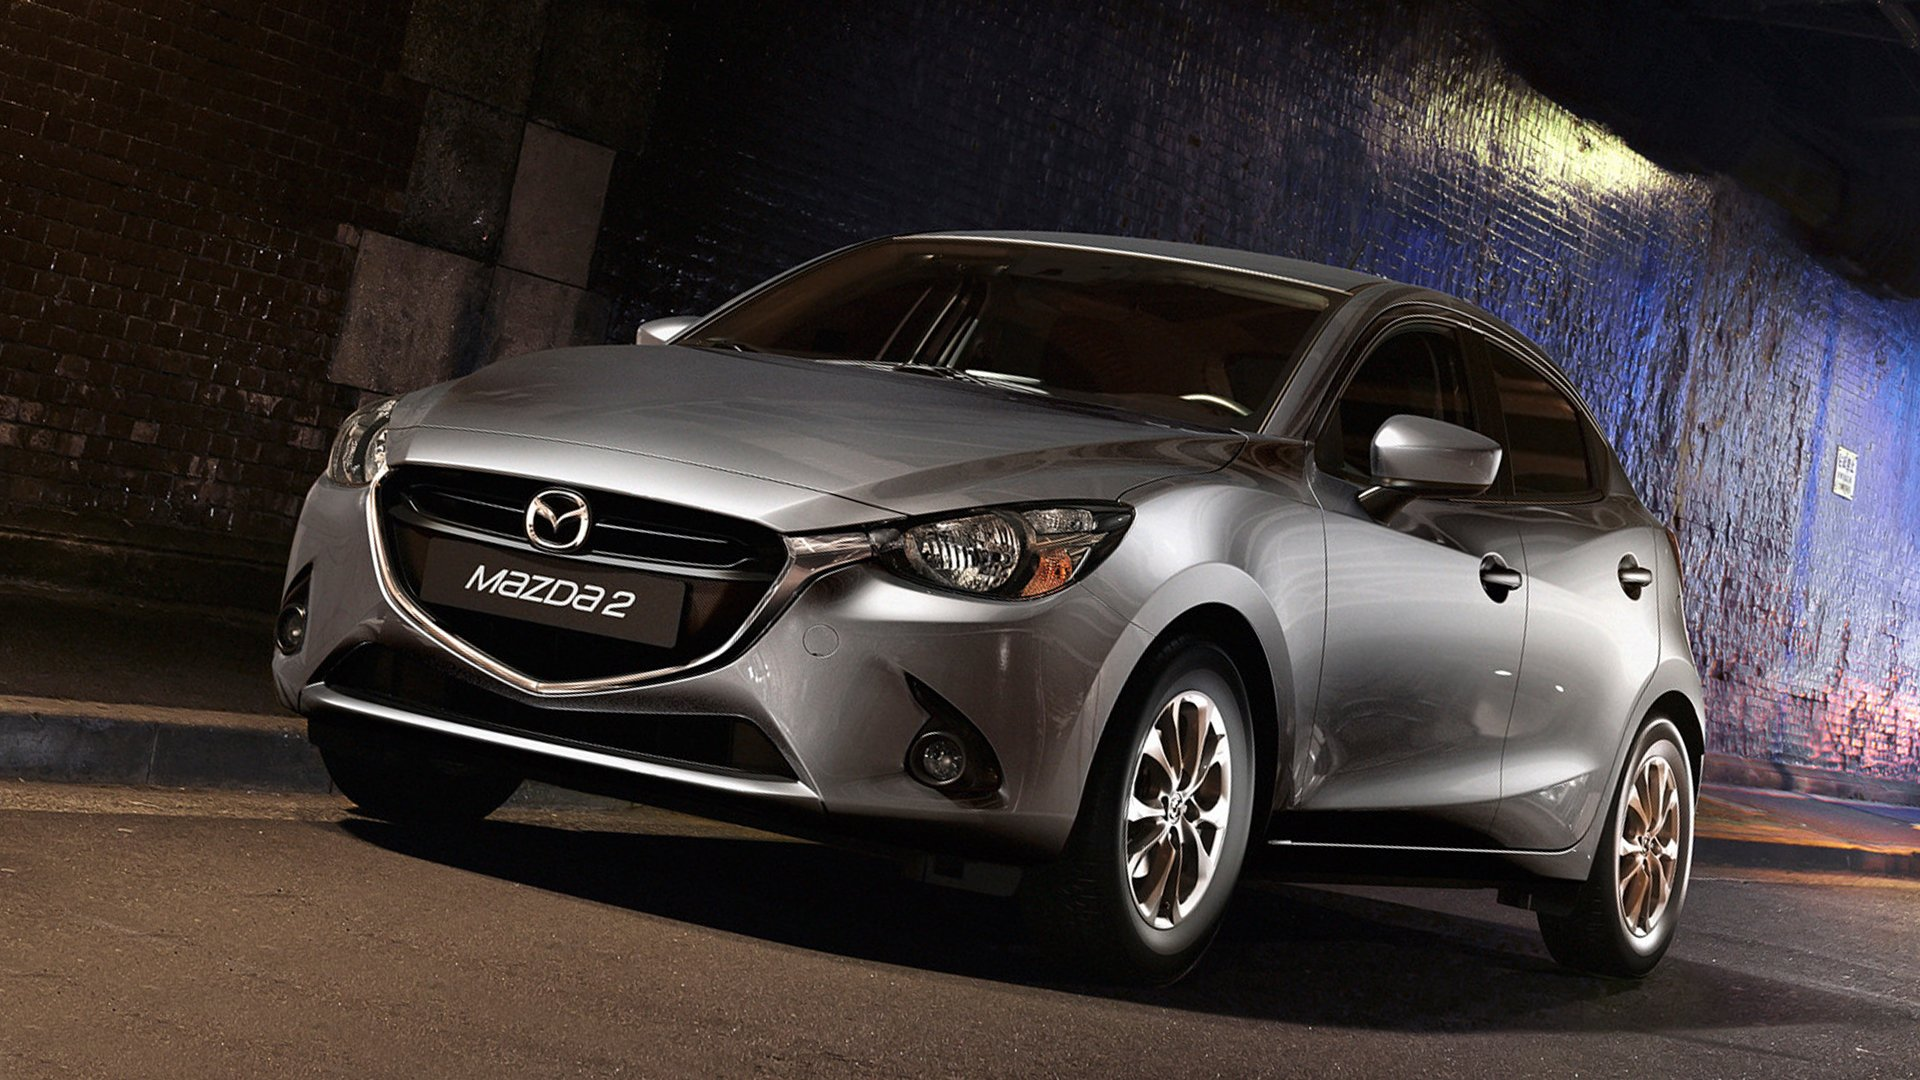 Mazda 2 Images Car HD